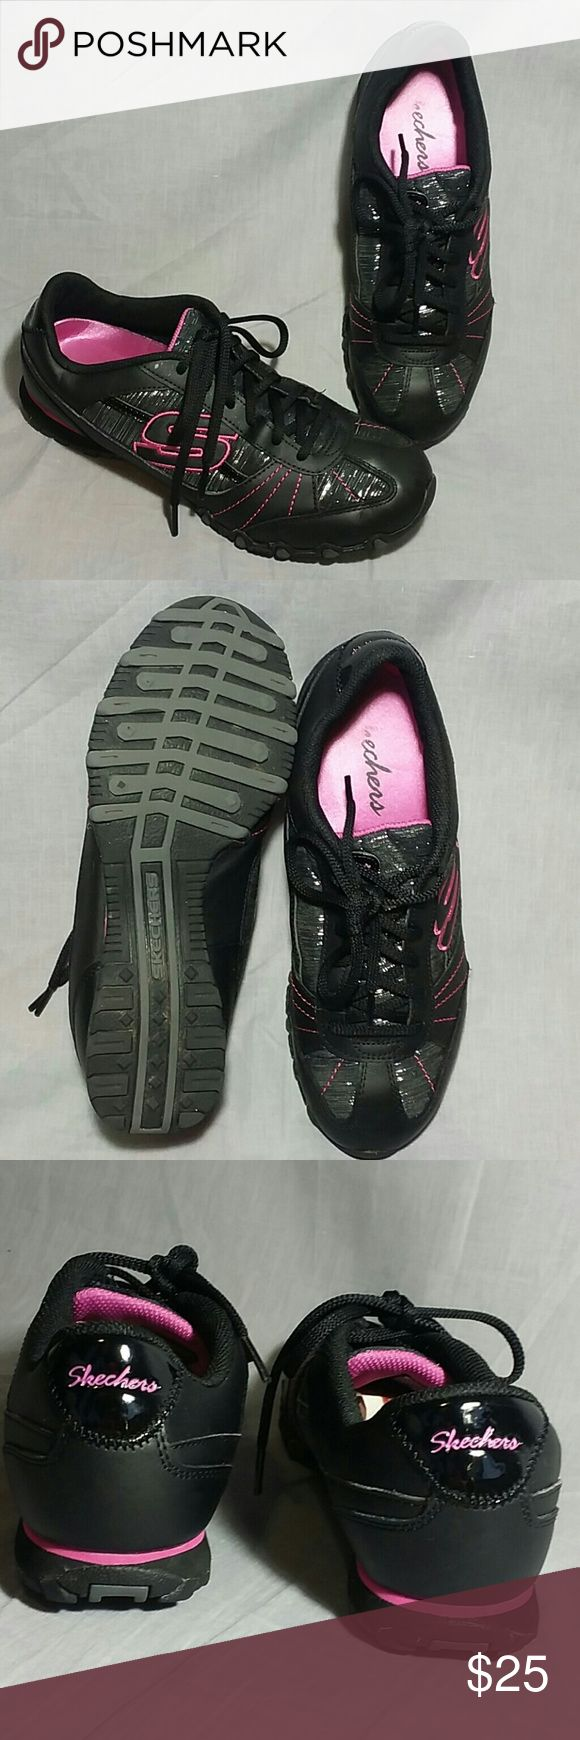 Skechers Shoes Pink/Black 8.5 M Lace ups Leather Women's Shoes Leather / synthetic upper Item is in a good condition. Skechers Shoes Sneakers